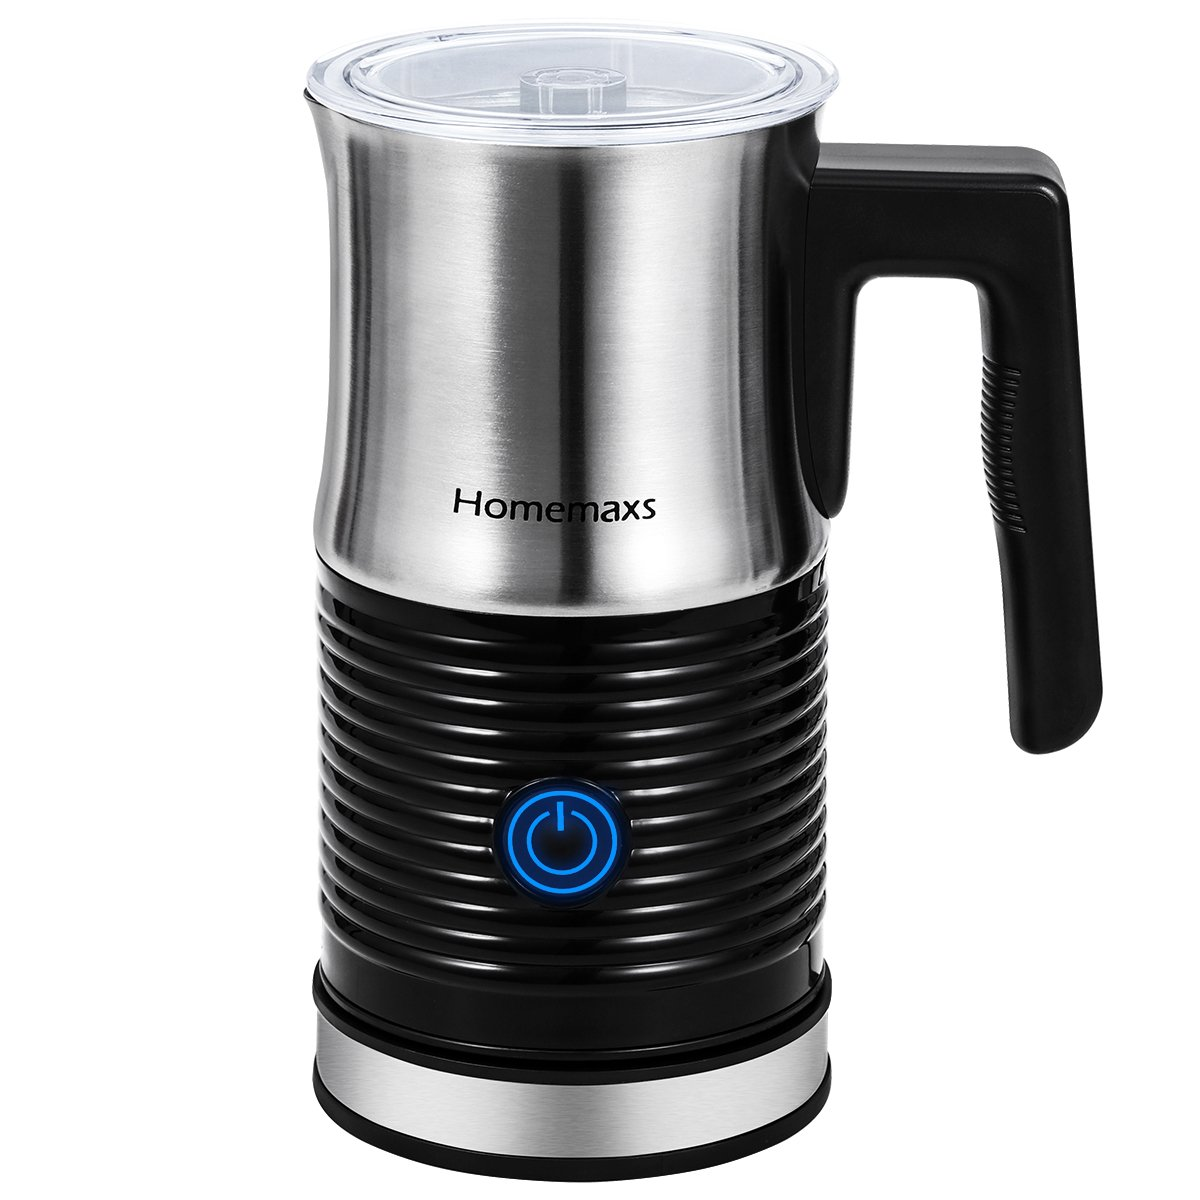 Milk Frother, Homemaxs Milk Steamer Frother Electric Warmer & Heater Milk Perfect Foam for Coffee, Hot Chocolate, Cappuccino, Silent Operation, Anti-hot Base & Non-Stick Interior